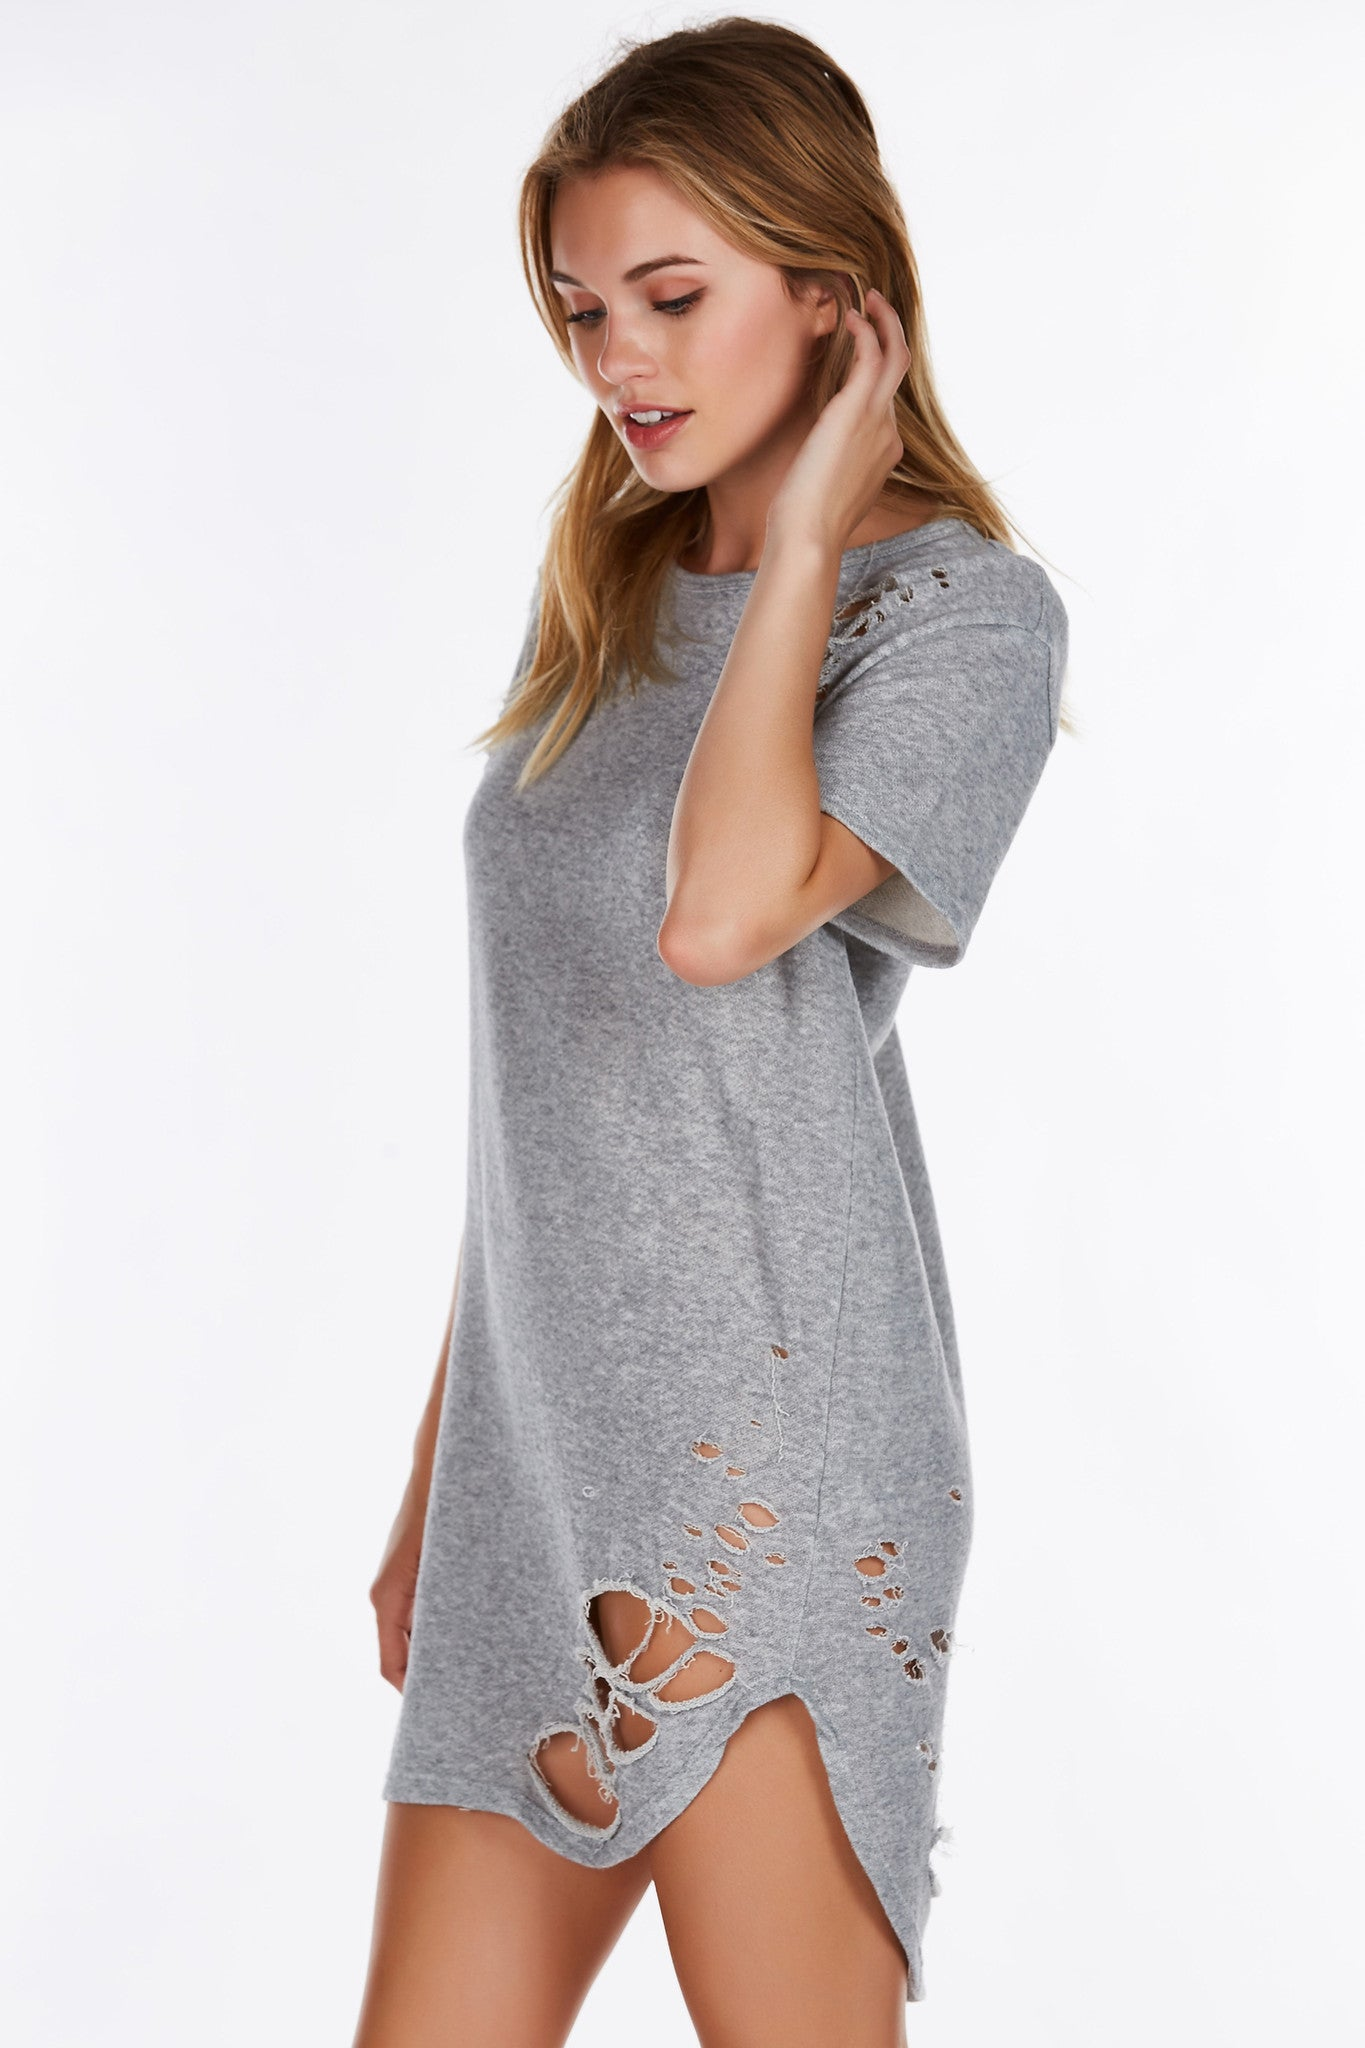 If you're into the street-style look, you'll love this dope distressed tunic. Neckline mirrors the rounded hi-low hem with casual short sleeves. Amazing tears throughout for a vintage, worn out vibe. Wear it as a dress or a long line tee depending on your look for the day!